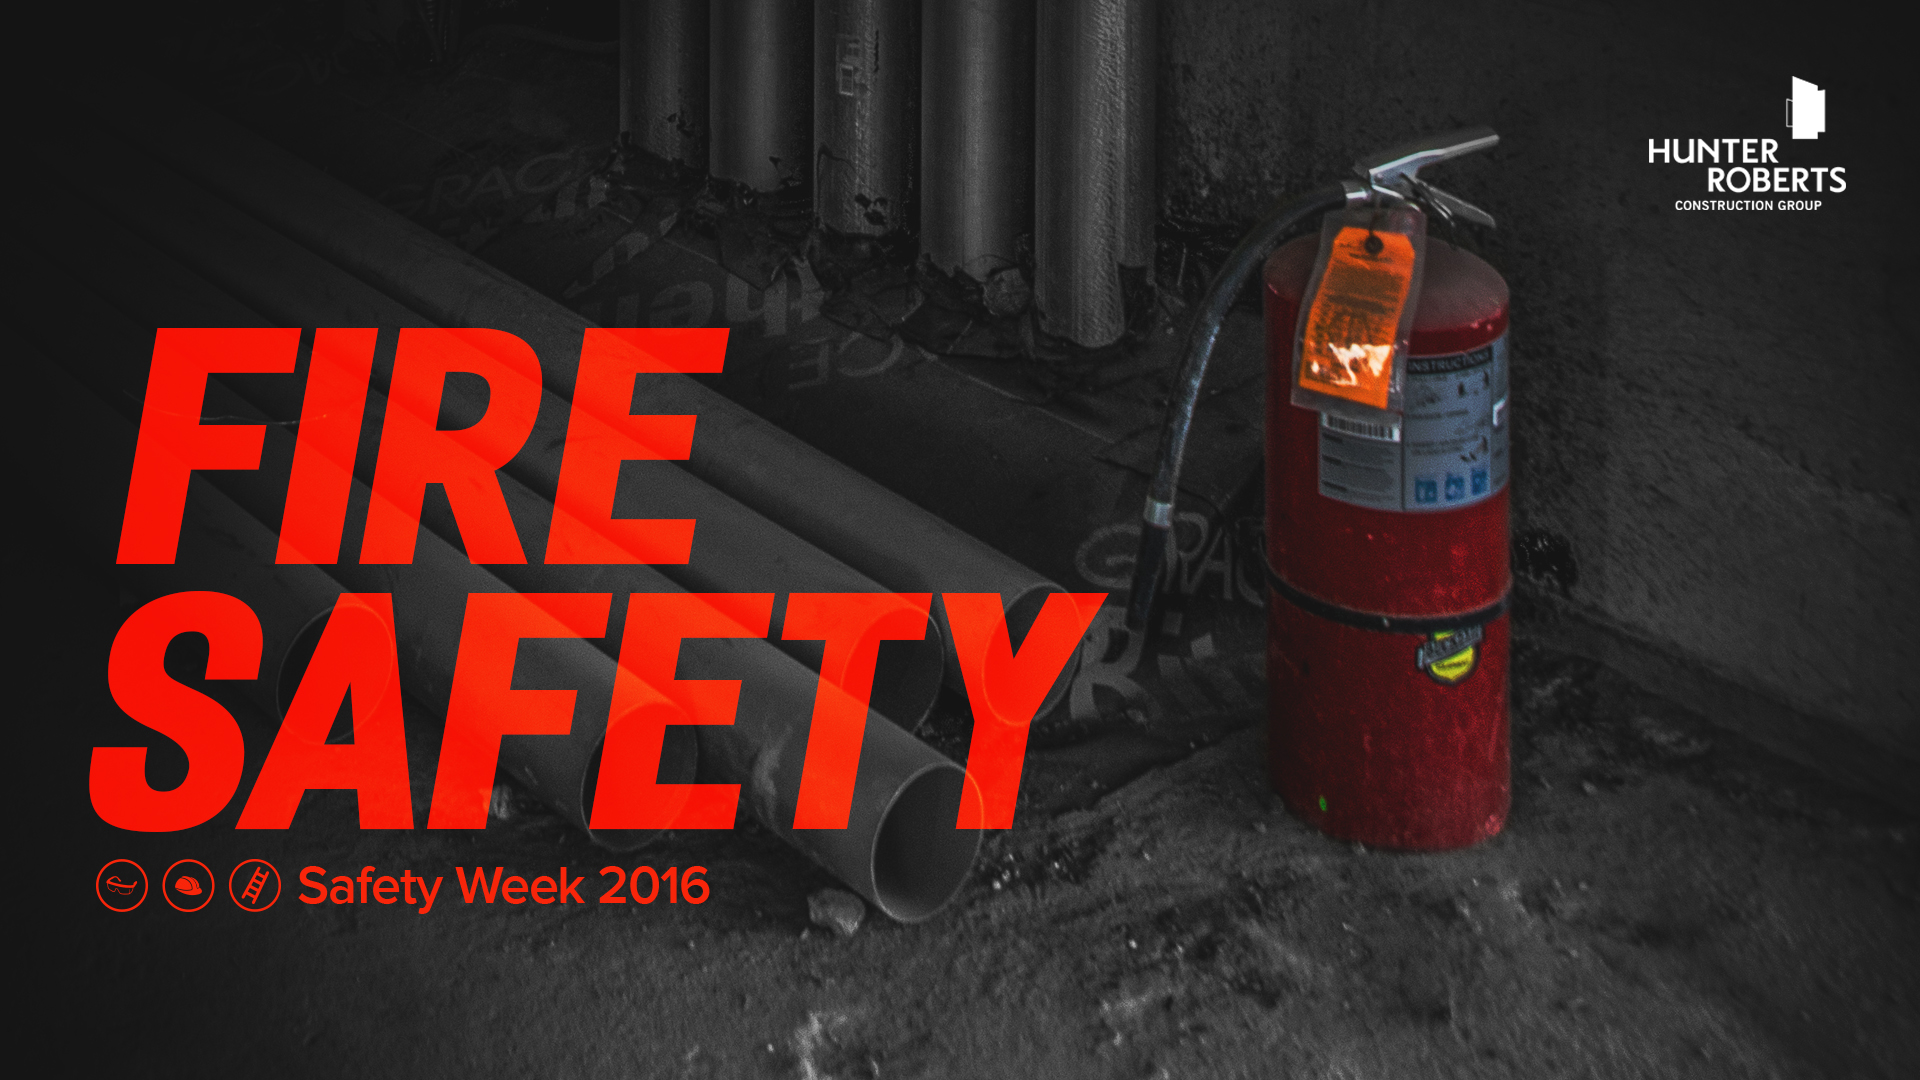 Safety Week 2016 Fire Safety Hunter Roberts